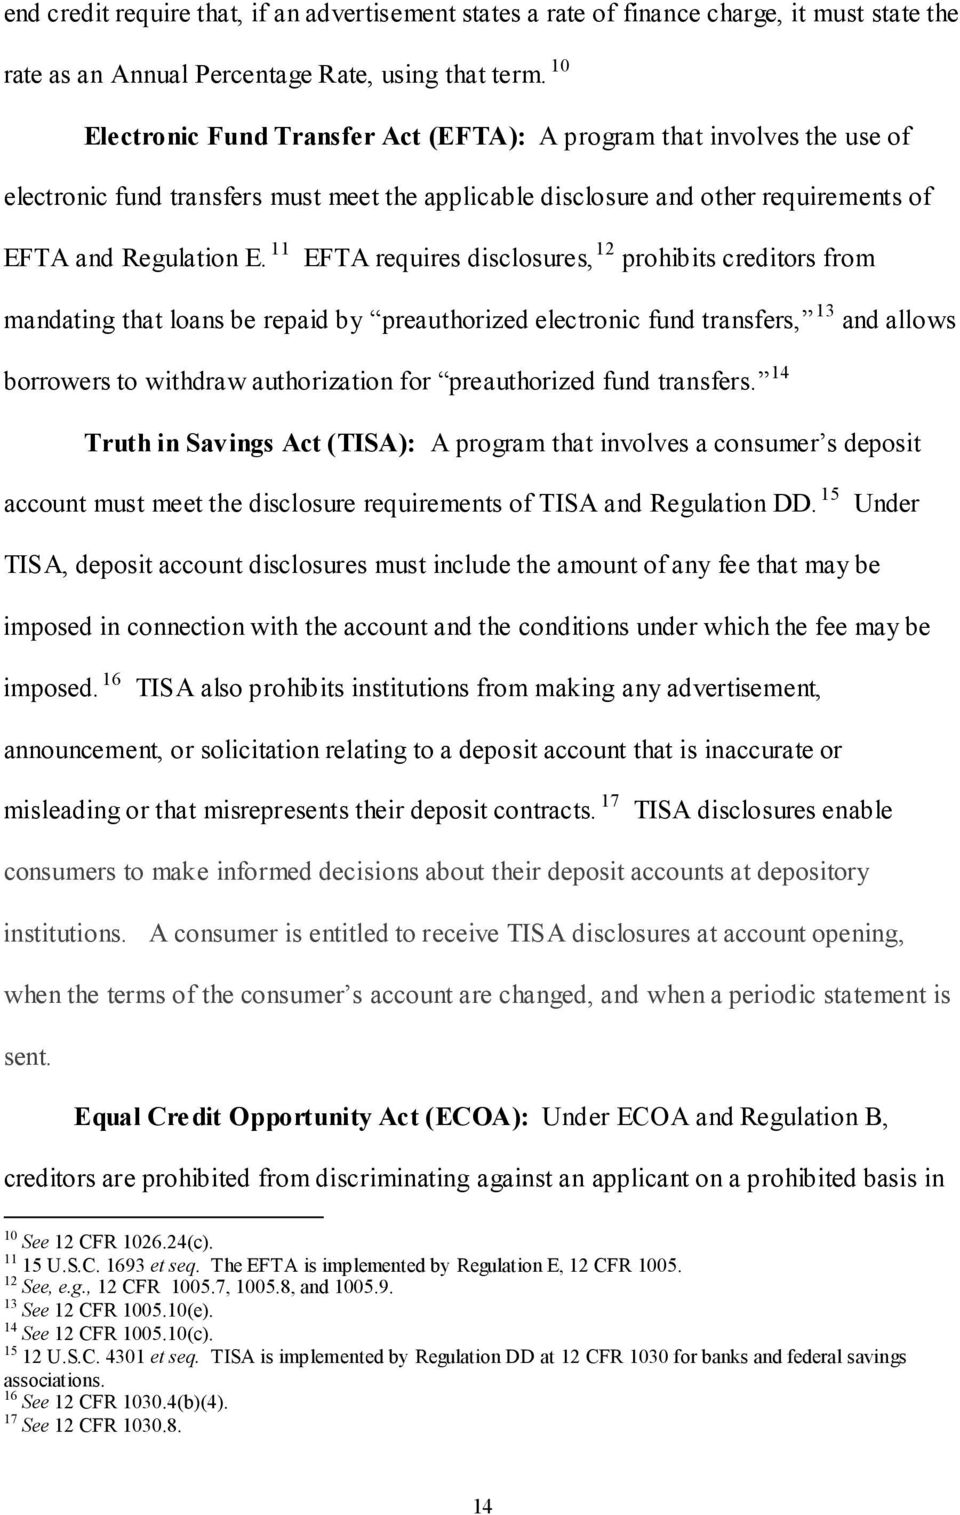 11 EFTA requires disclosures, 12 prohibits creditors from mandating that loans be repaid by preauthorized electronic fund transfers, 13 and allows borrowers to withdraw authorization for